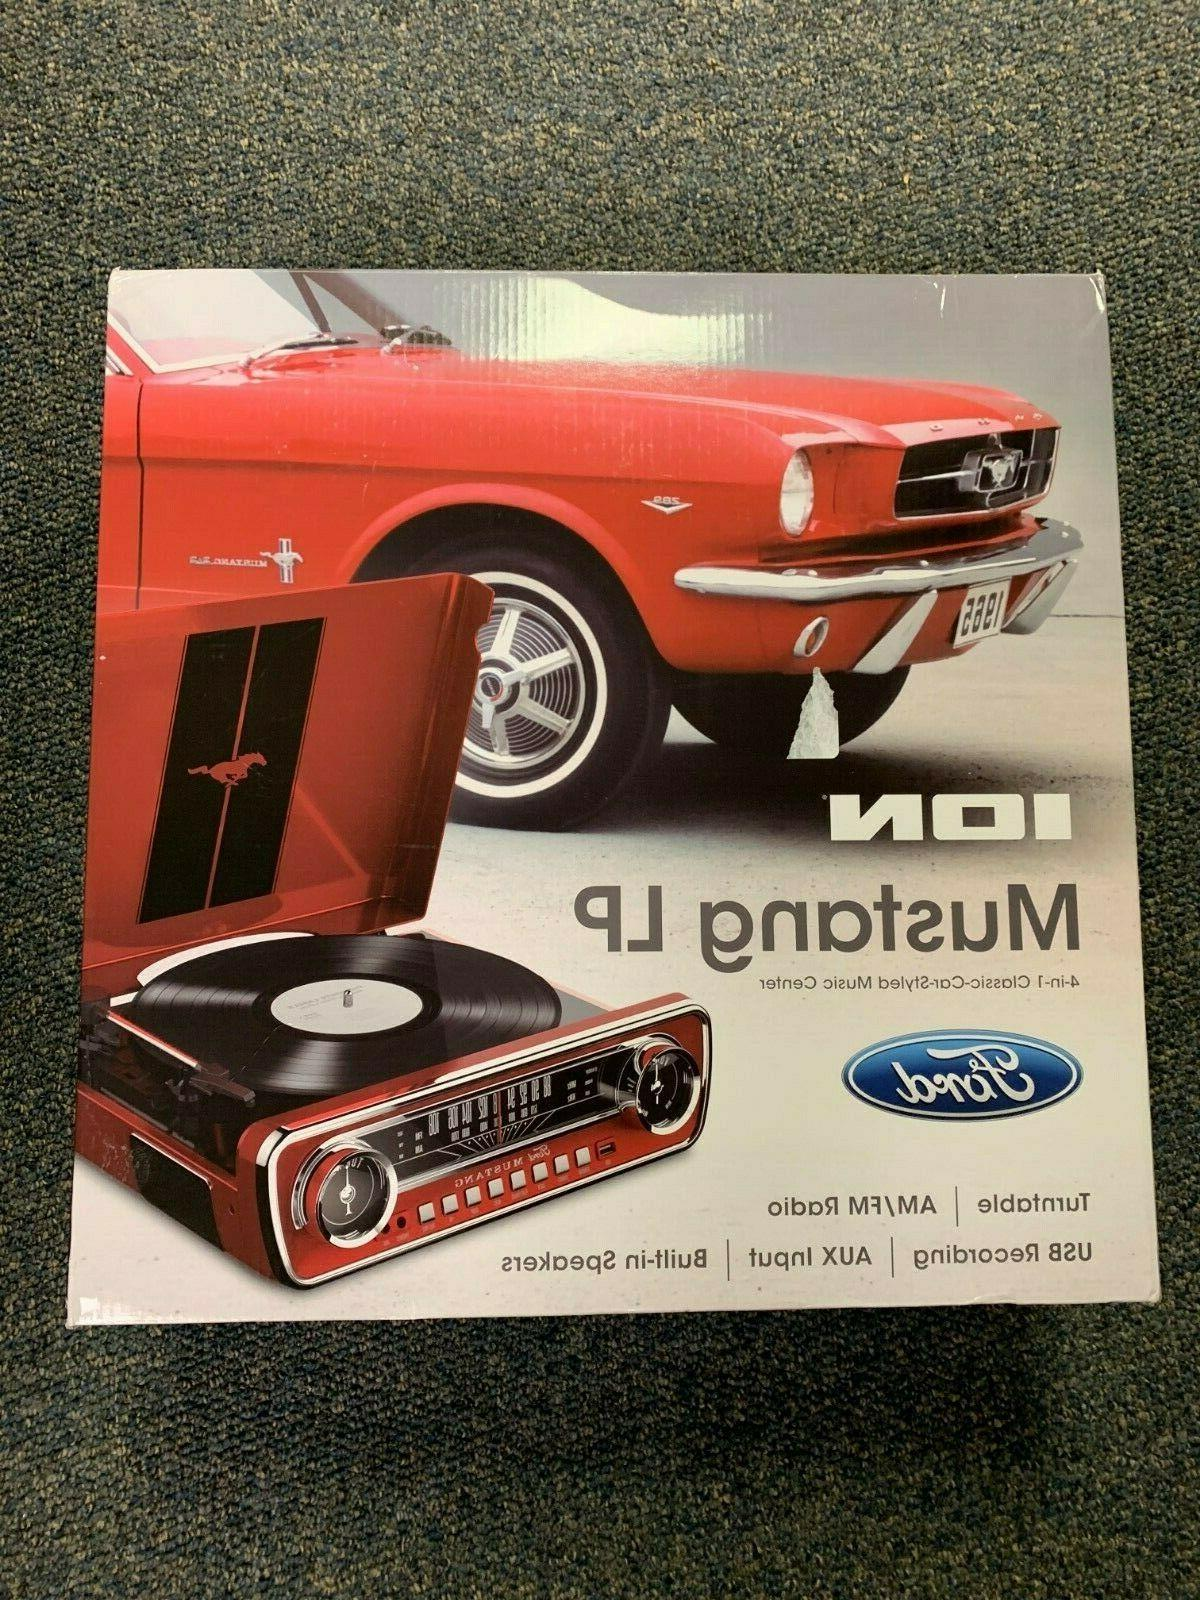 ion mustang lp 4 in 1 turntable